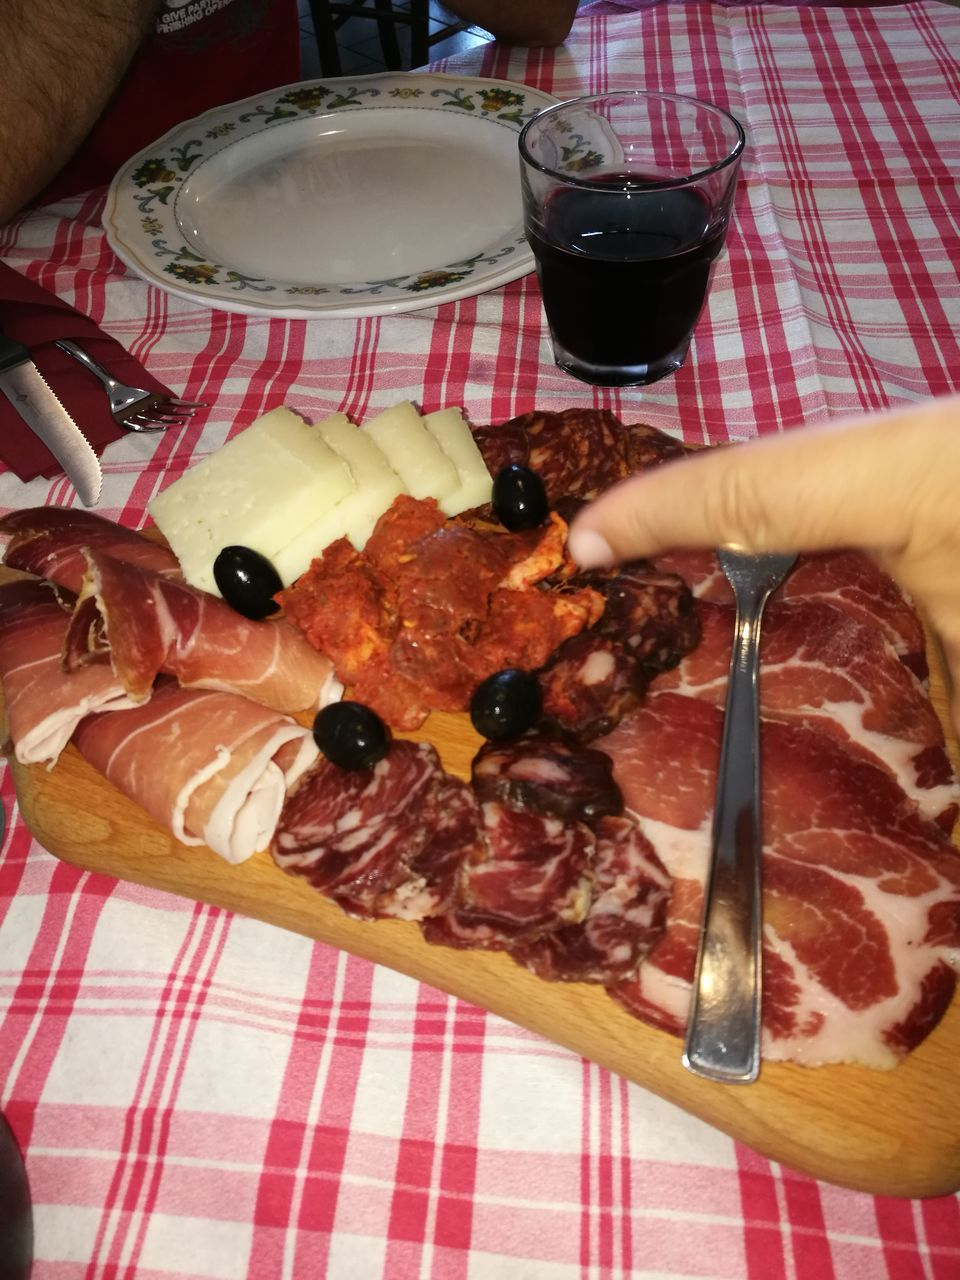 food and drink, human hand, food, human body part, real people, one person, indoors, red wine, indulgence, table, holding, tablecloth, plate, freshness, sweet food, ready-to-eat, temptation, dessert, meat, wineglass, lifestyles, unhealthy eating, close-up, day, people